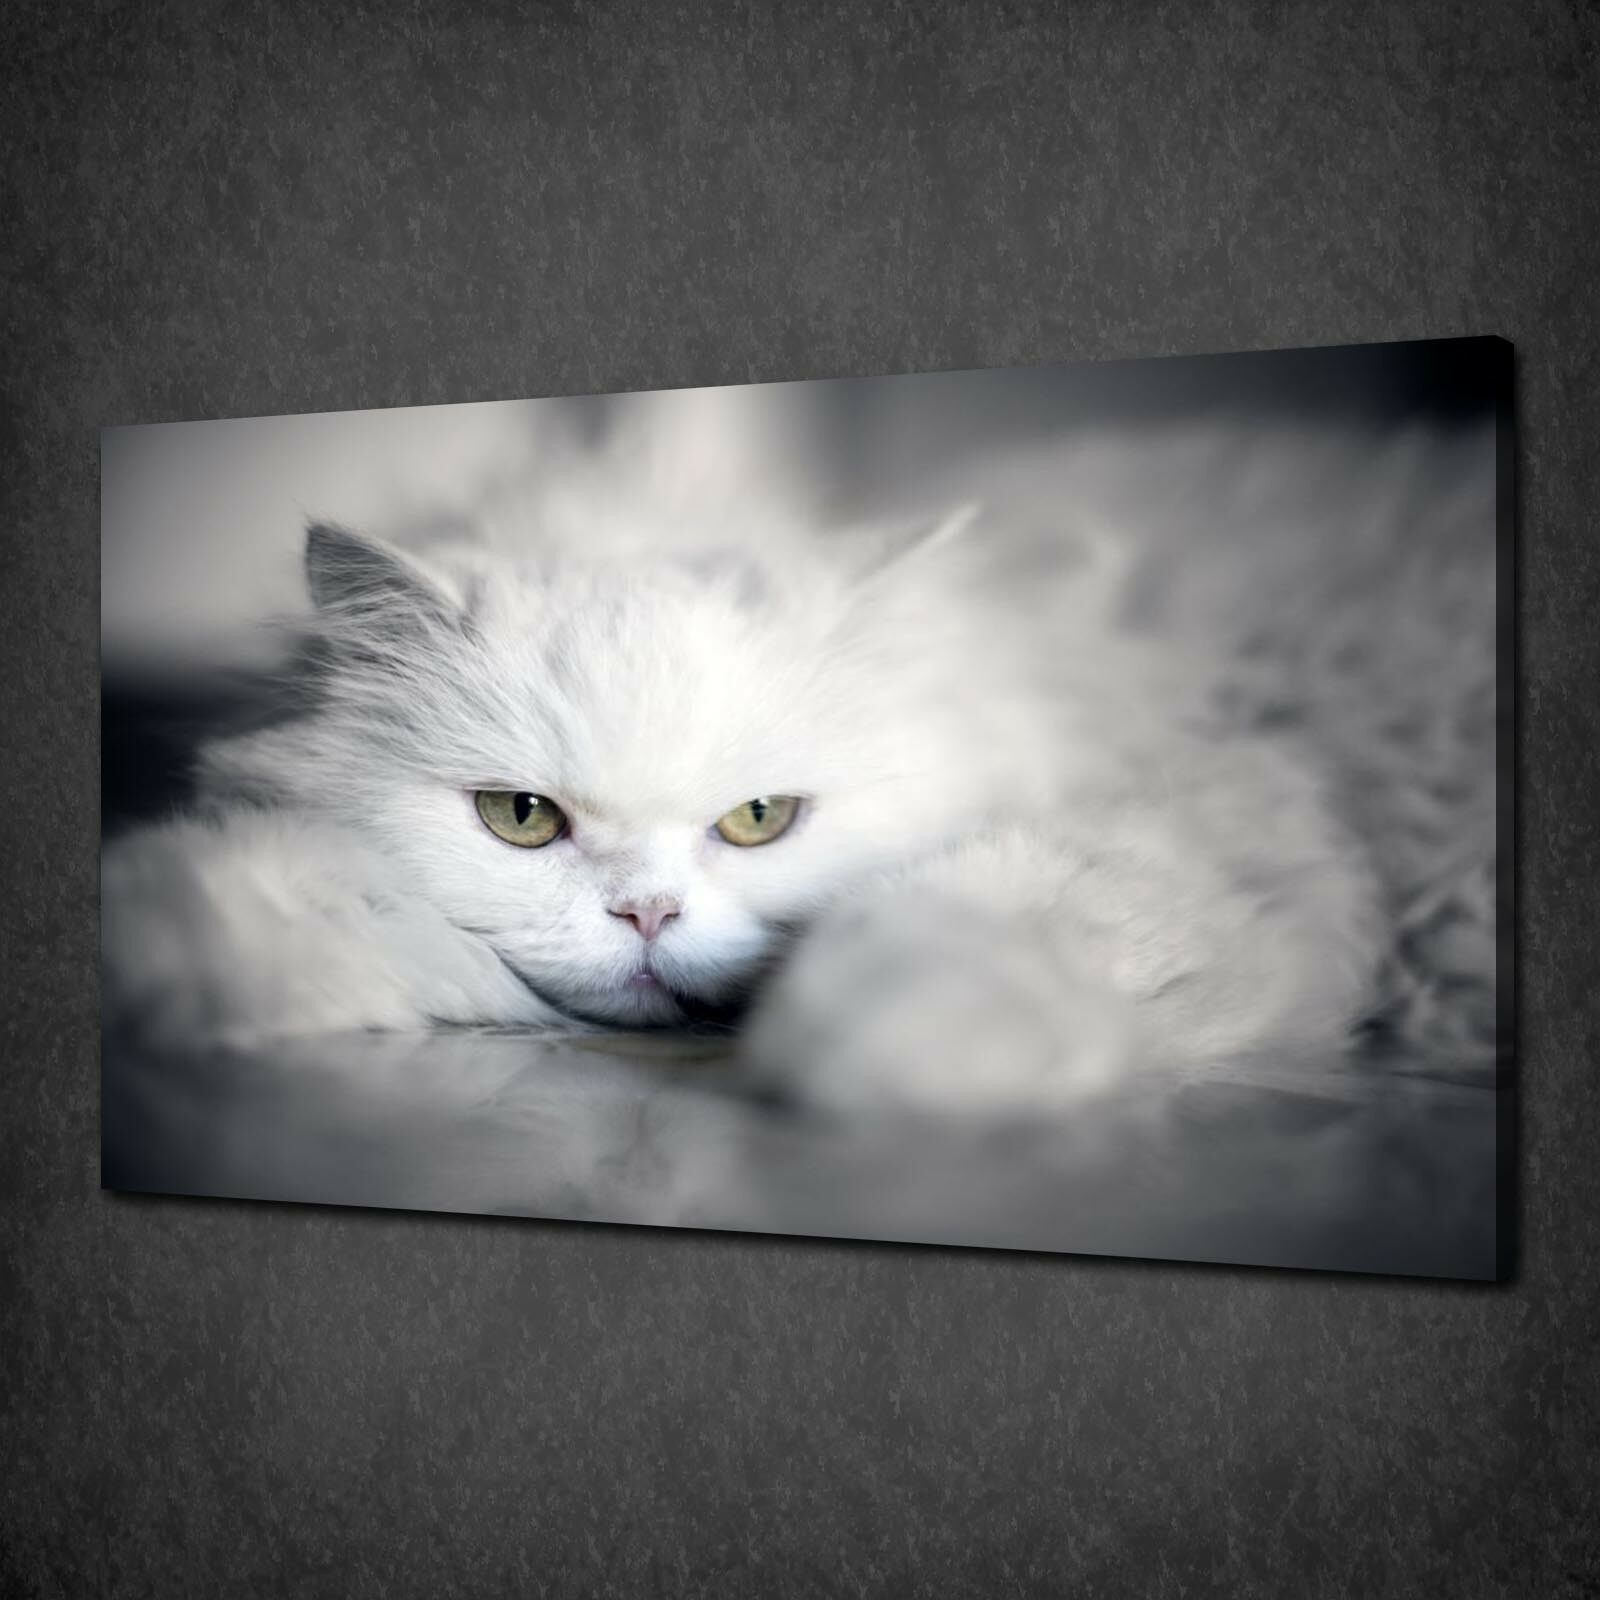 SLEEPY Weiß CAT CANVAS PICTURE PRINT WALL HANGING ART HOME DECOR FREE DELIVERY